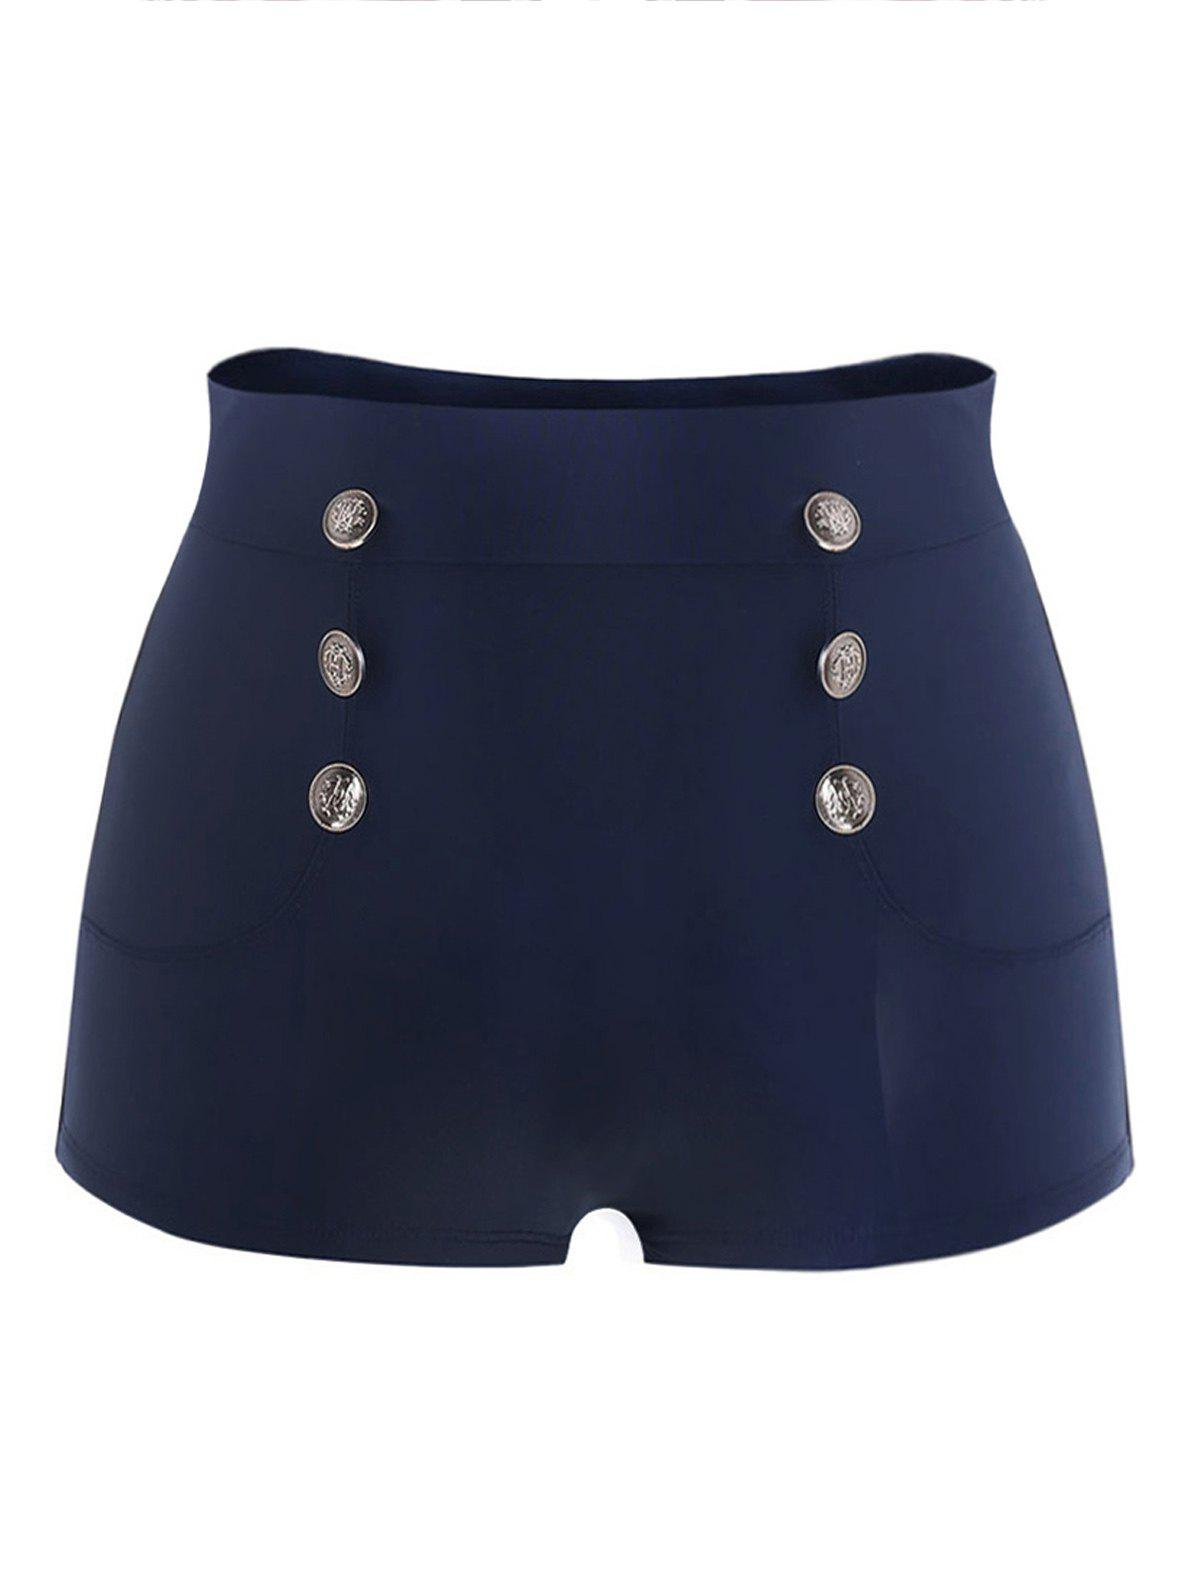 Store Plus Size High Waist Button Detail Swim Briefs